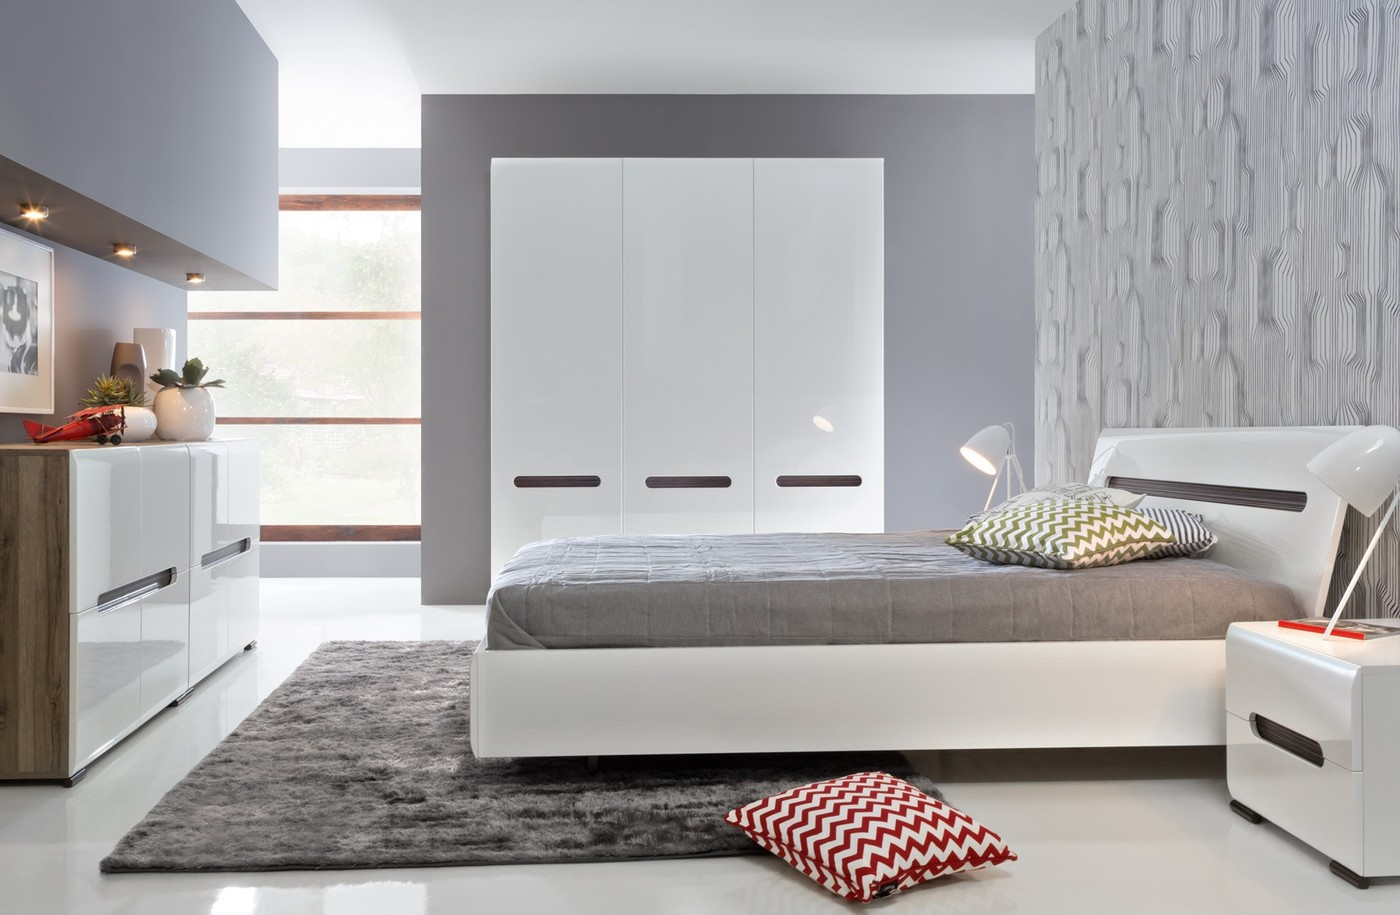 White Bedroom Furniture 51 Photos Modern Bedroom Design With Glossy Furniture In Peach And Blue Lilac And Blue Lacquered